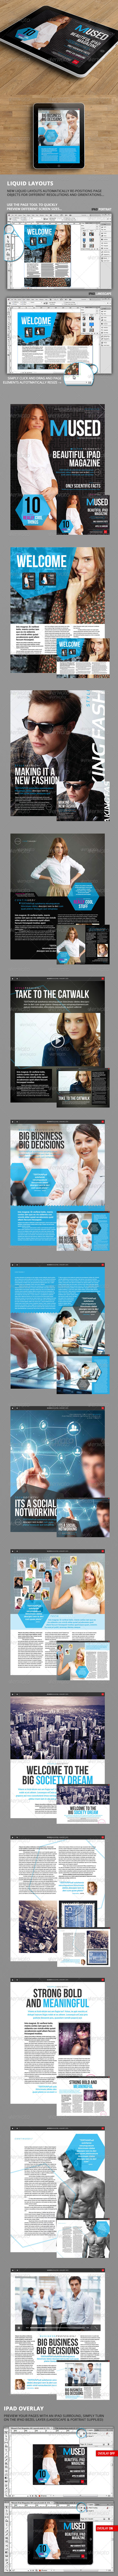 Mused iPad Magazine - Magazines Print Templates